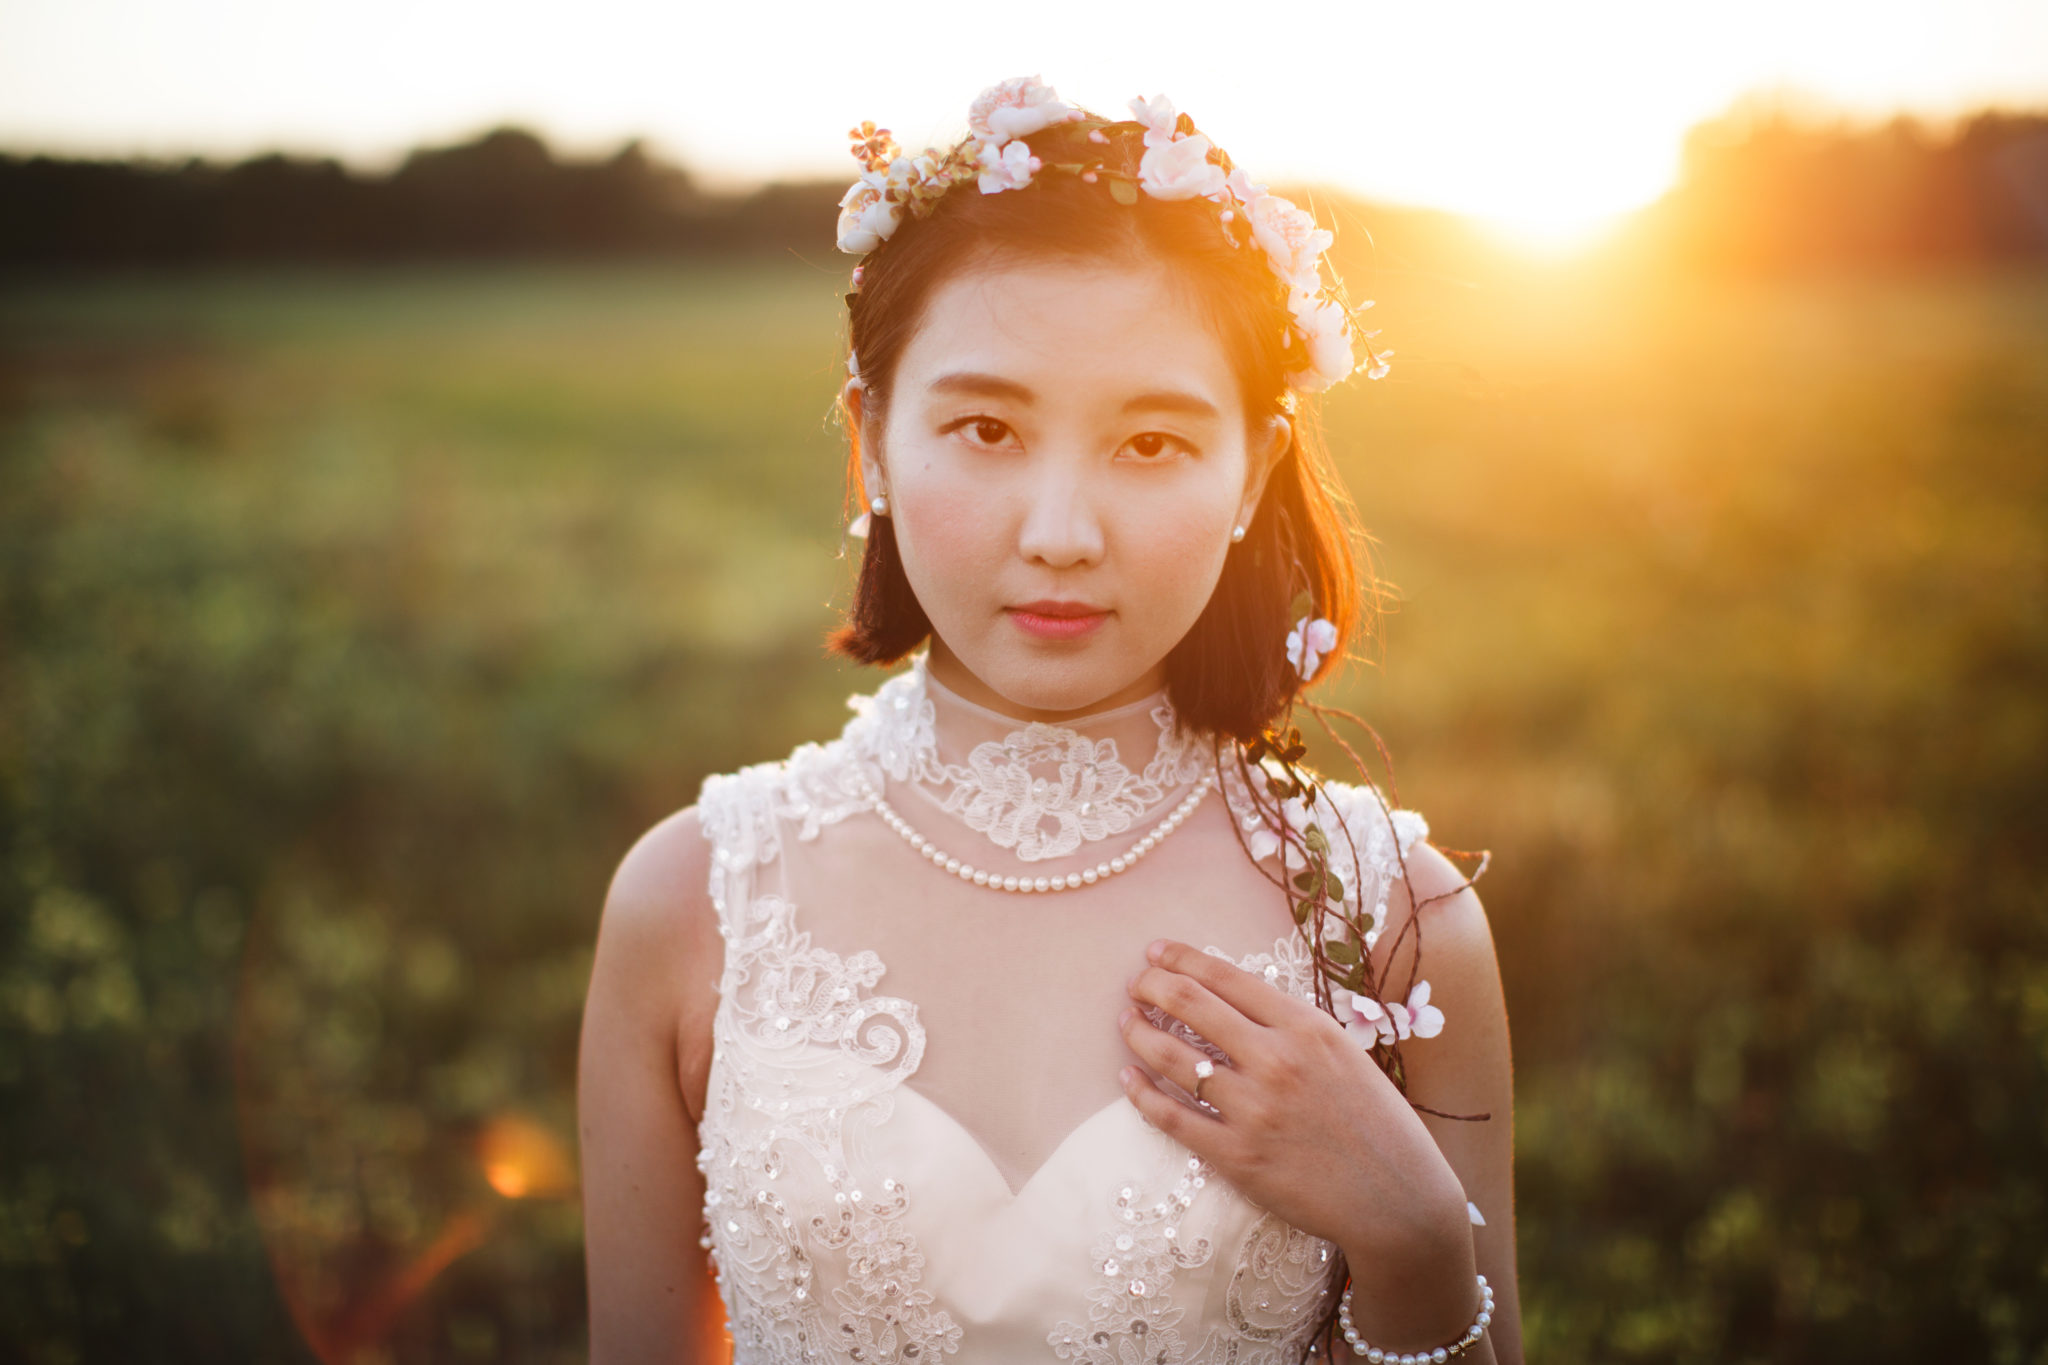 bride-field-sunset-niagara-on-the-lake-wedding